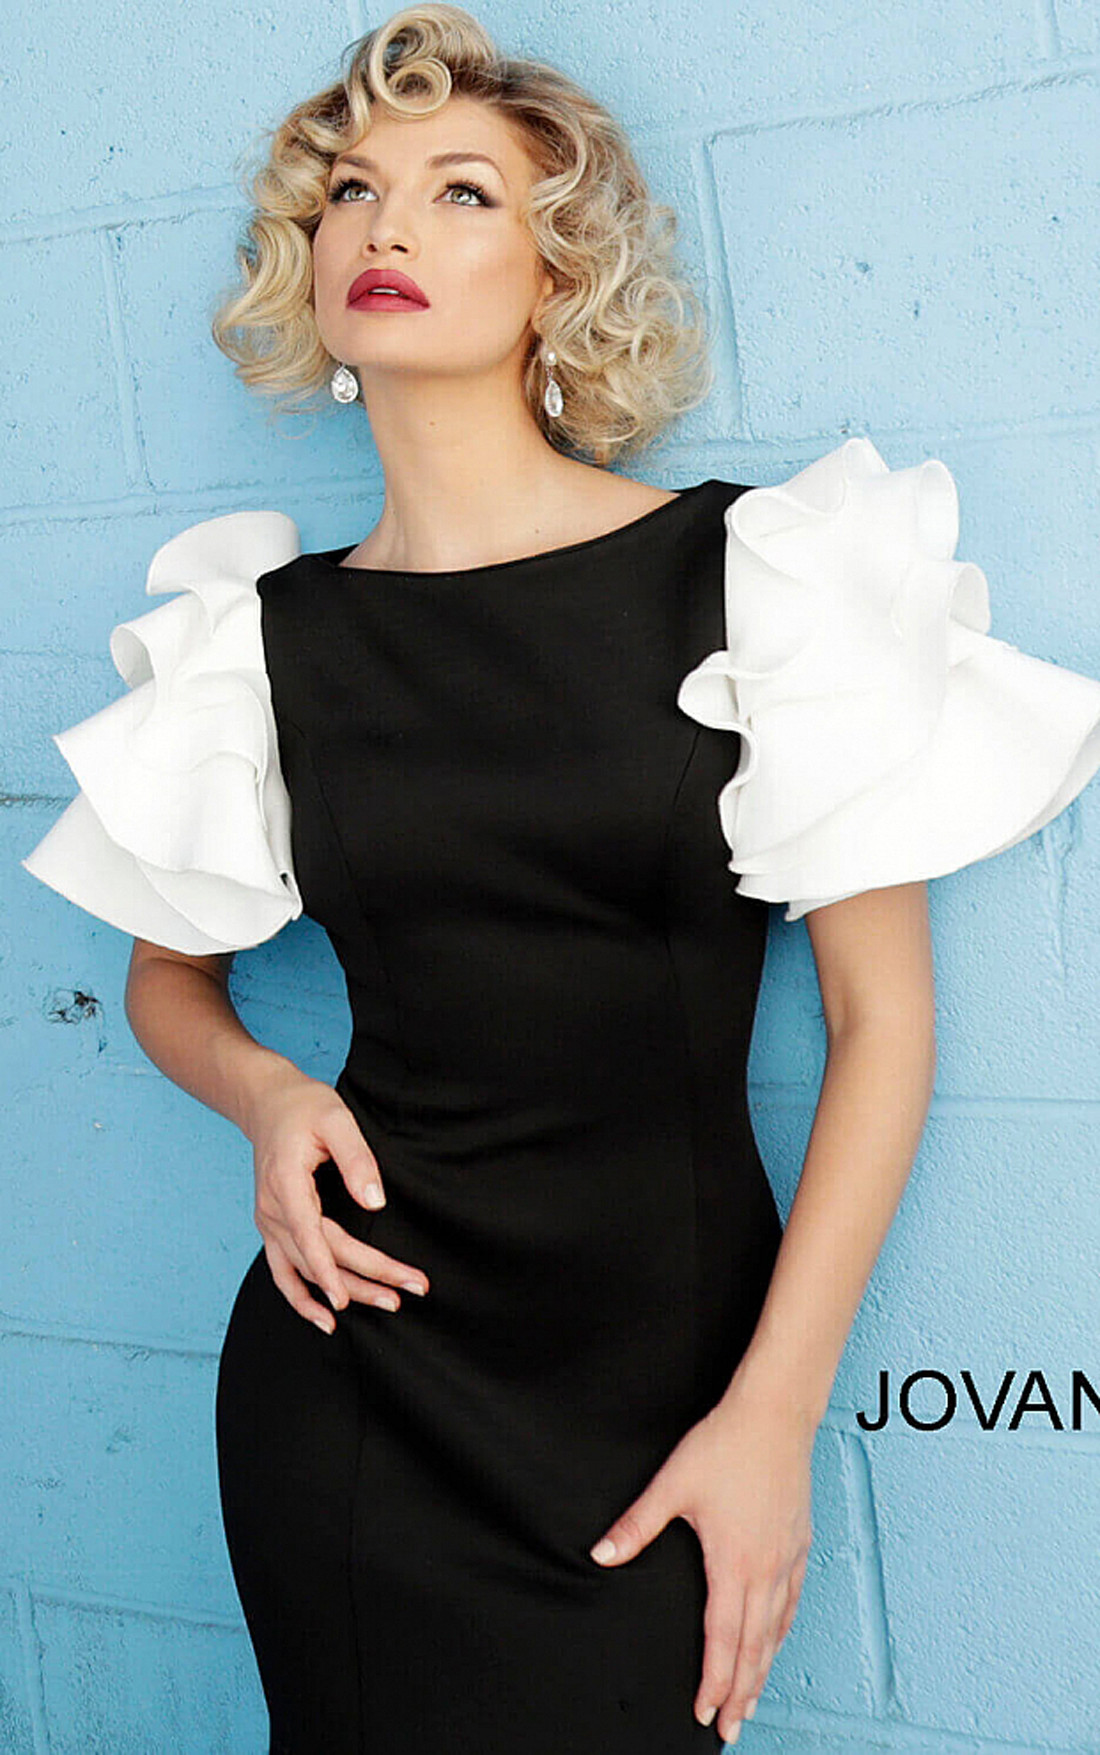 Jovani - Black and White Ruffle Short Sleeve Evening Gown (67119)